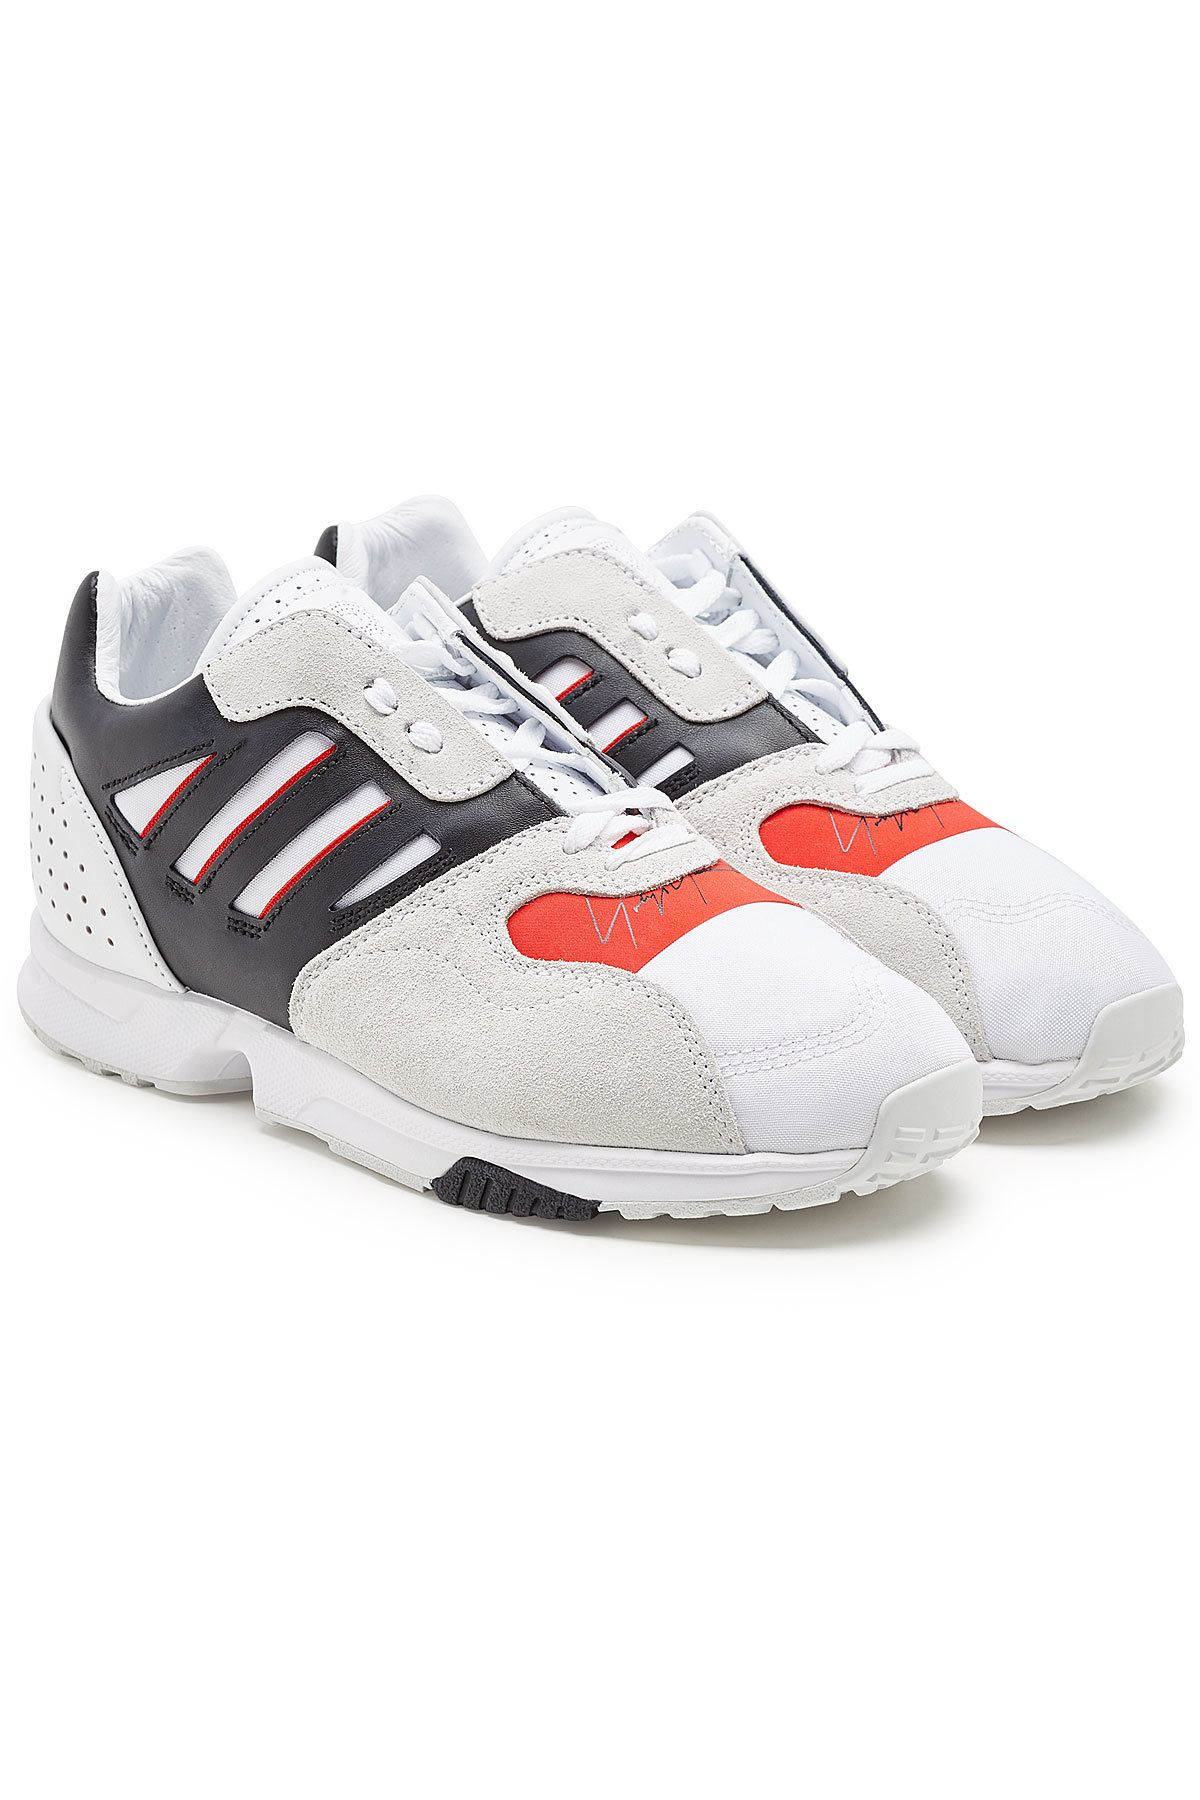 b17481a9d Y-3 ZX RUN SUEDE SNEAKERS WITH LEATHER.  y-3  shoes